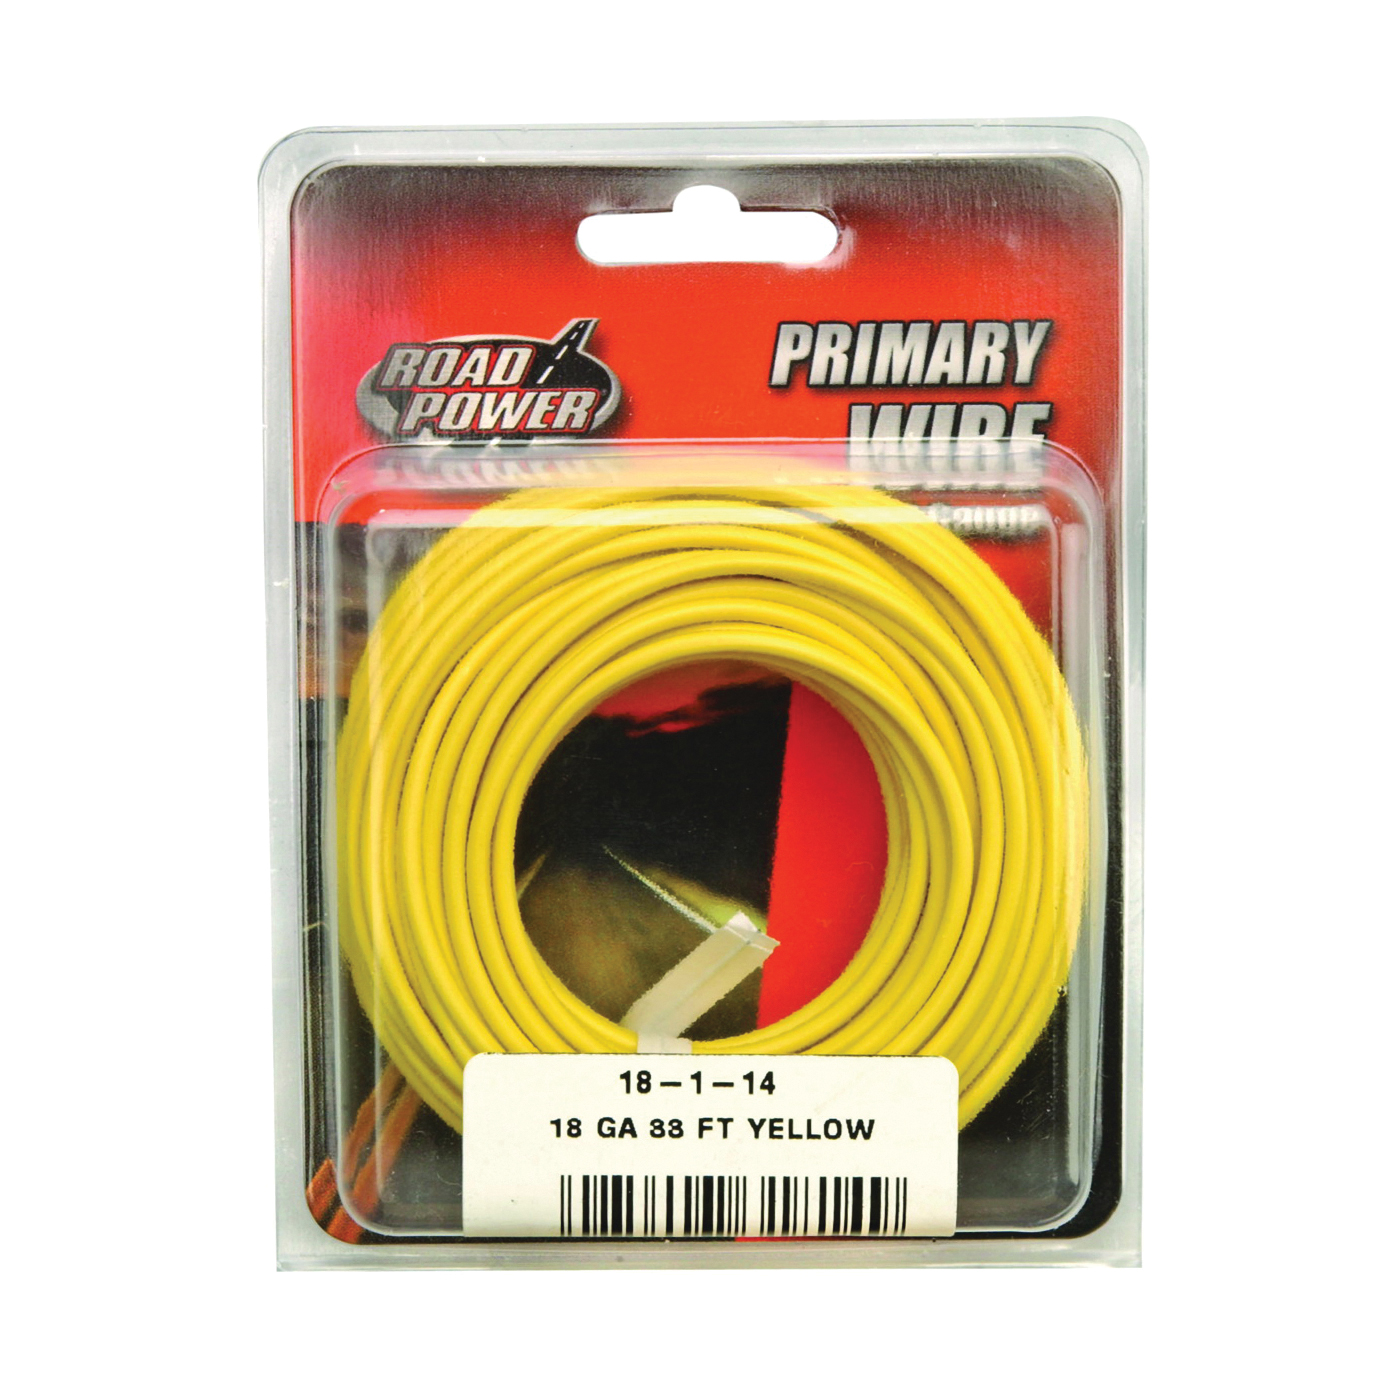 Picture of CCI Road Power 55843833/18-1-14 Electrical Wire, 18 AWG Wire, 25 VAC, 60 VDC, Copper Conductor, Yellow Sheath